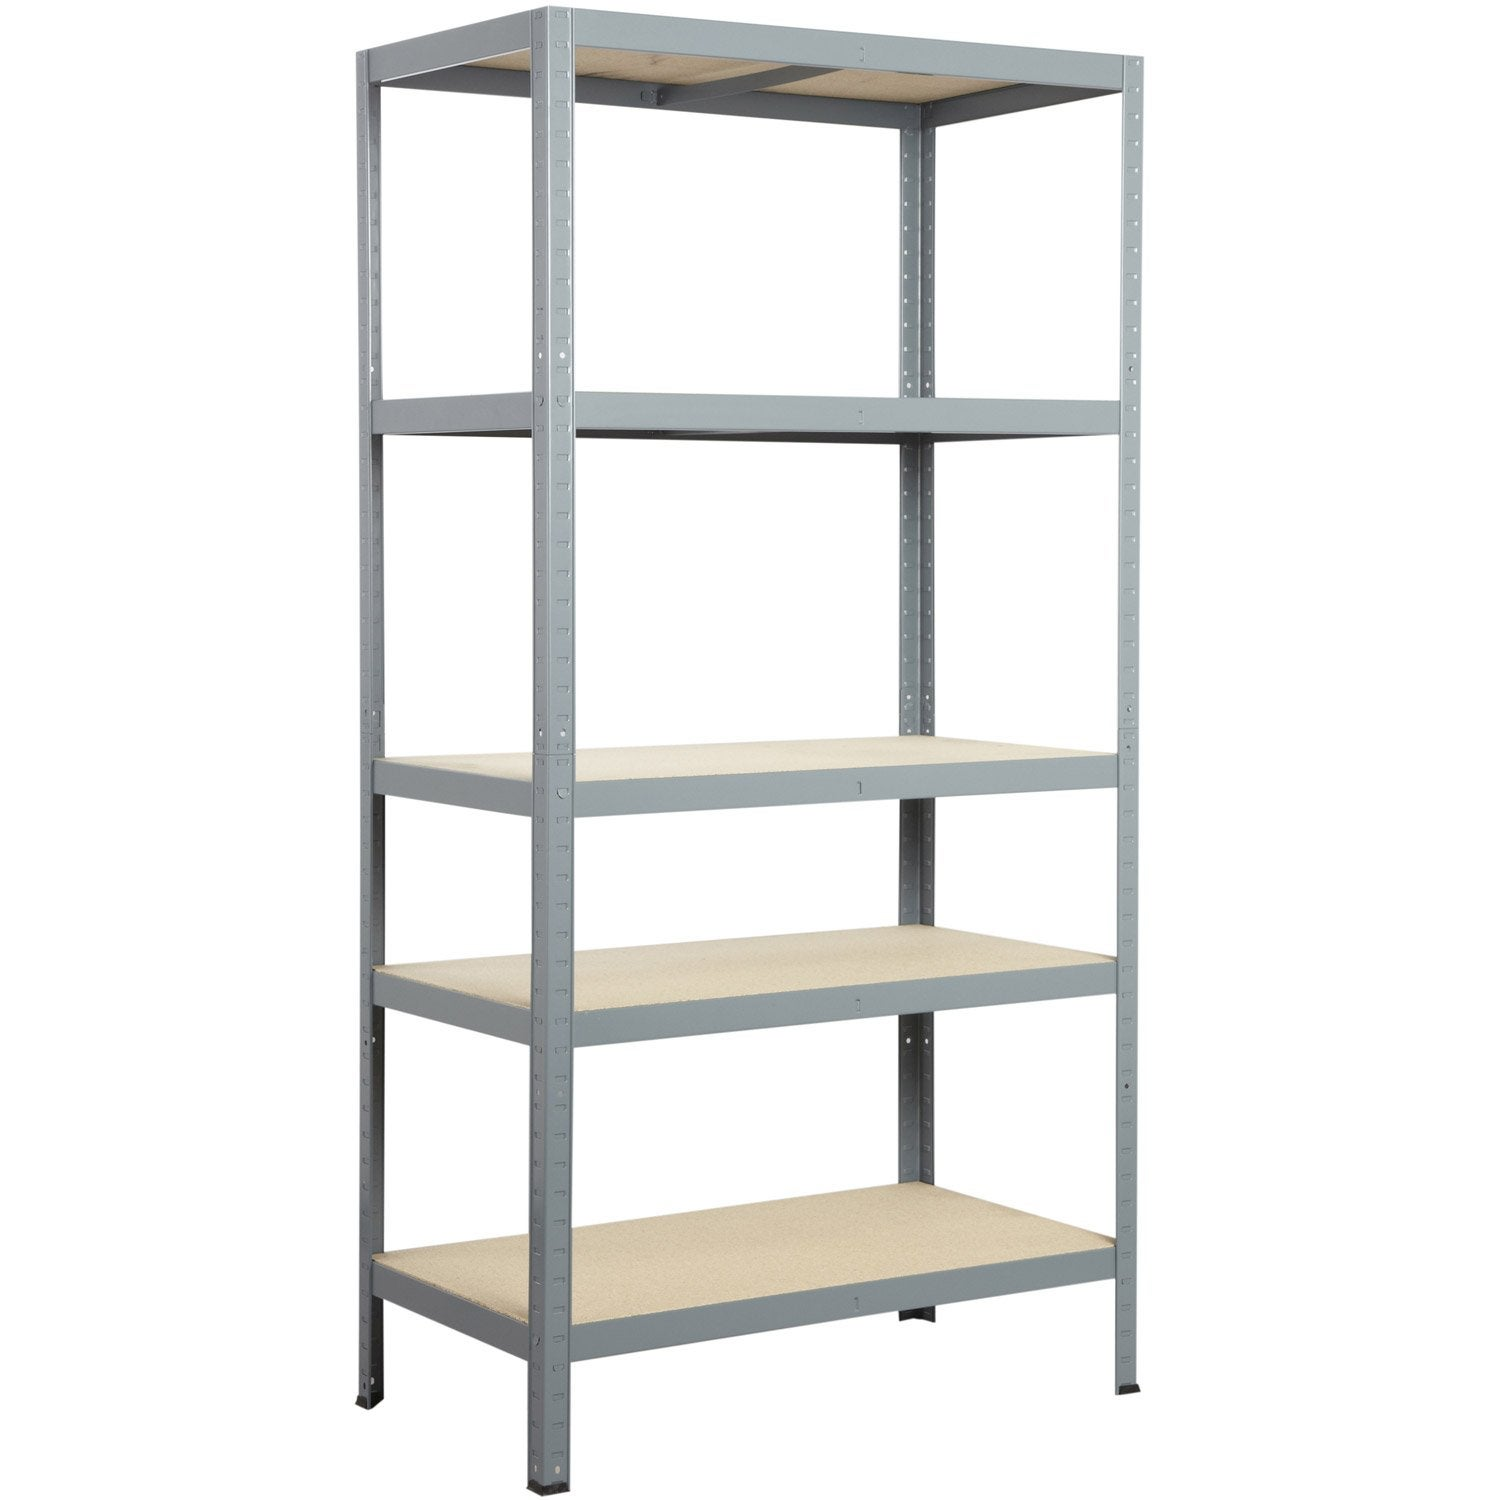 Etag re acier strong 5 tablettes gris x x p - Etagere modulable leroy merlin ...